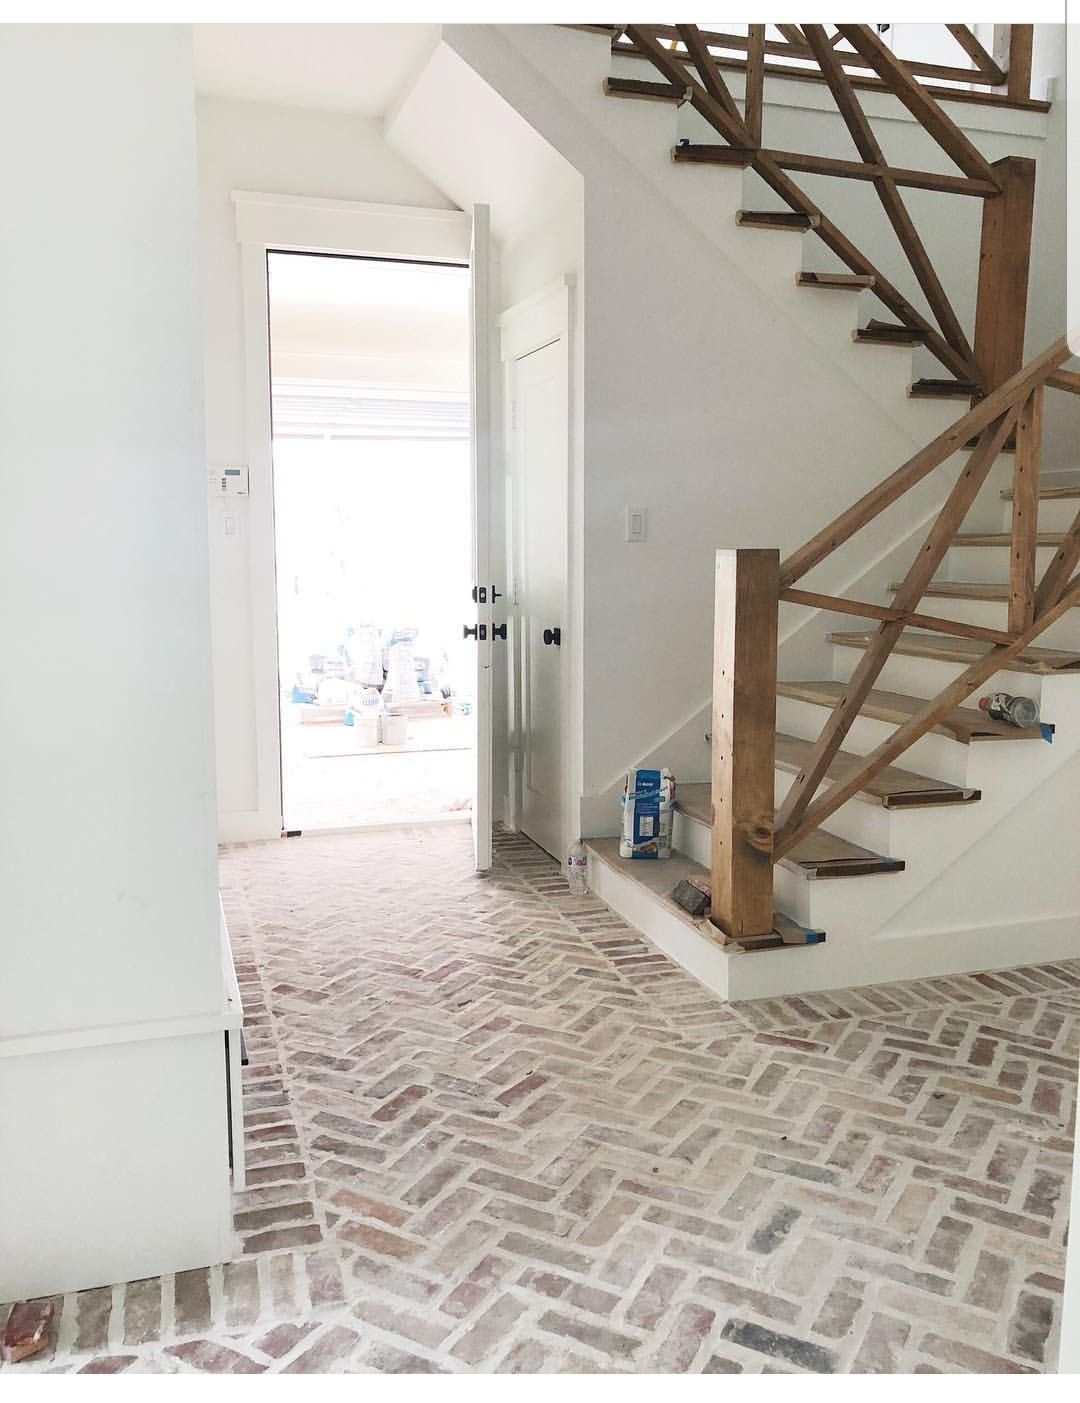 Photo of What I'm Planning For the Brick Floor in My Foyer